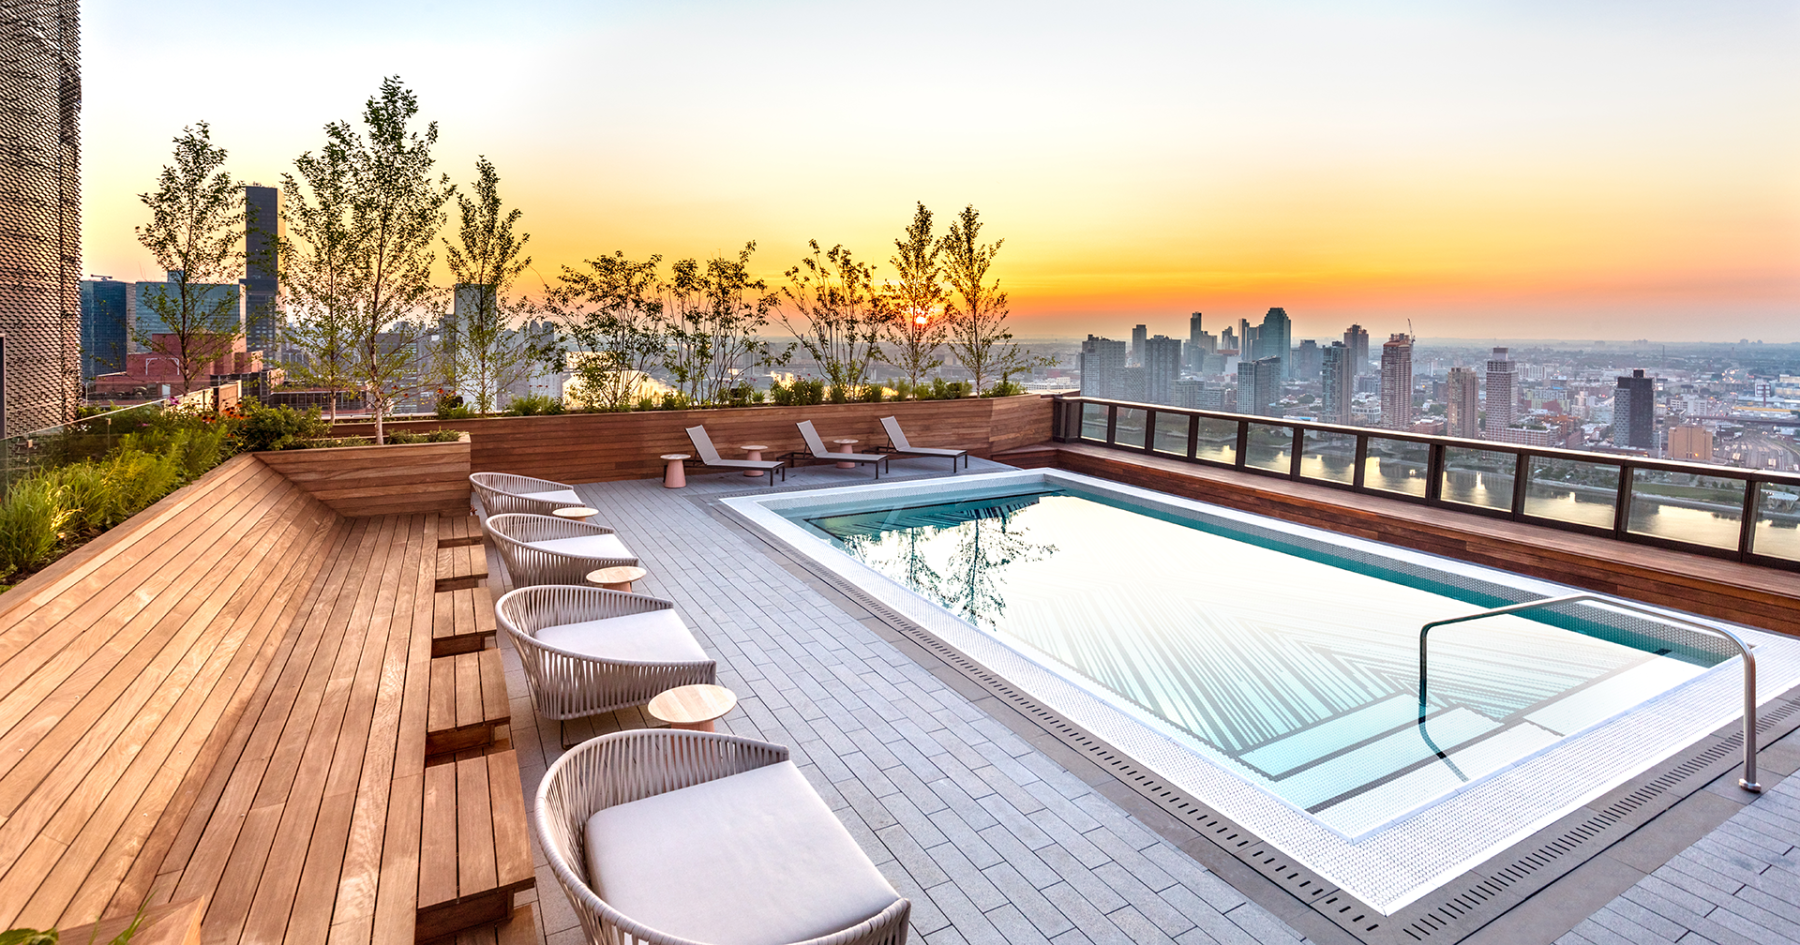 A Compendium of NYC's Best New Rooftop Bars